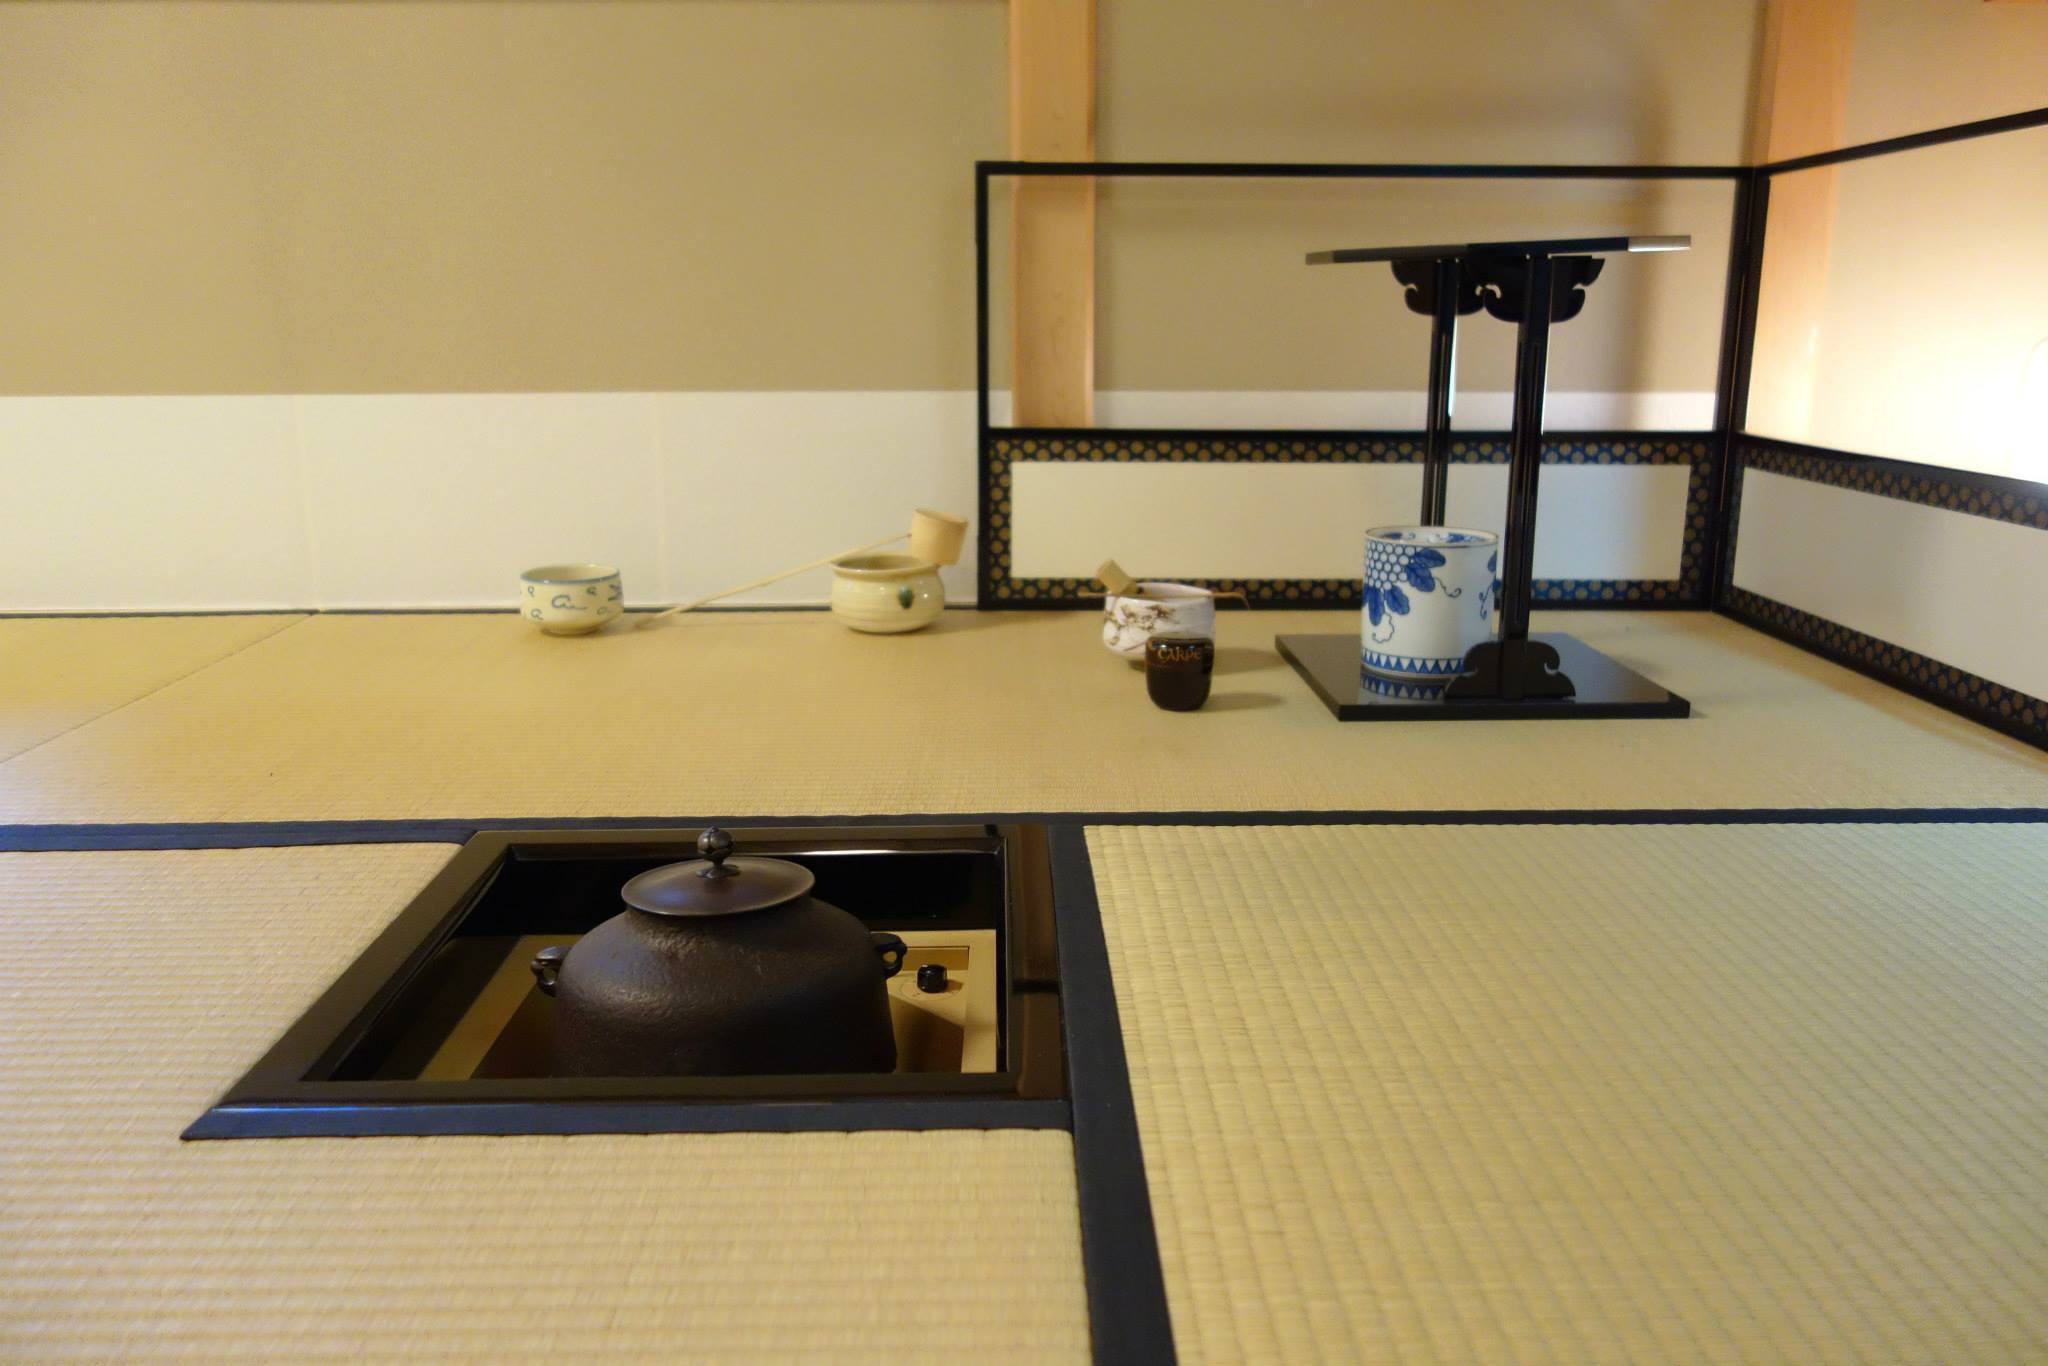 Traditional matcha tea ceremony